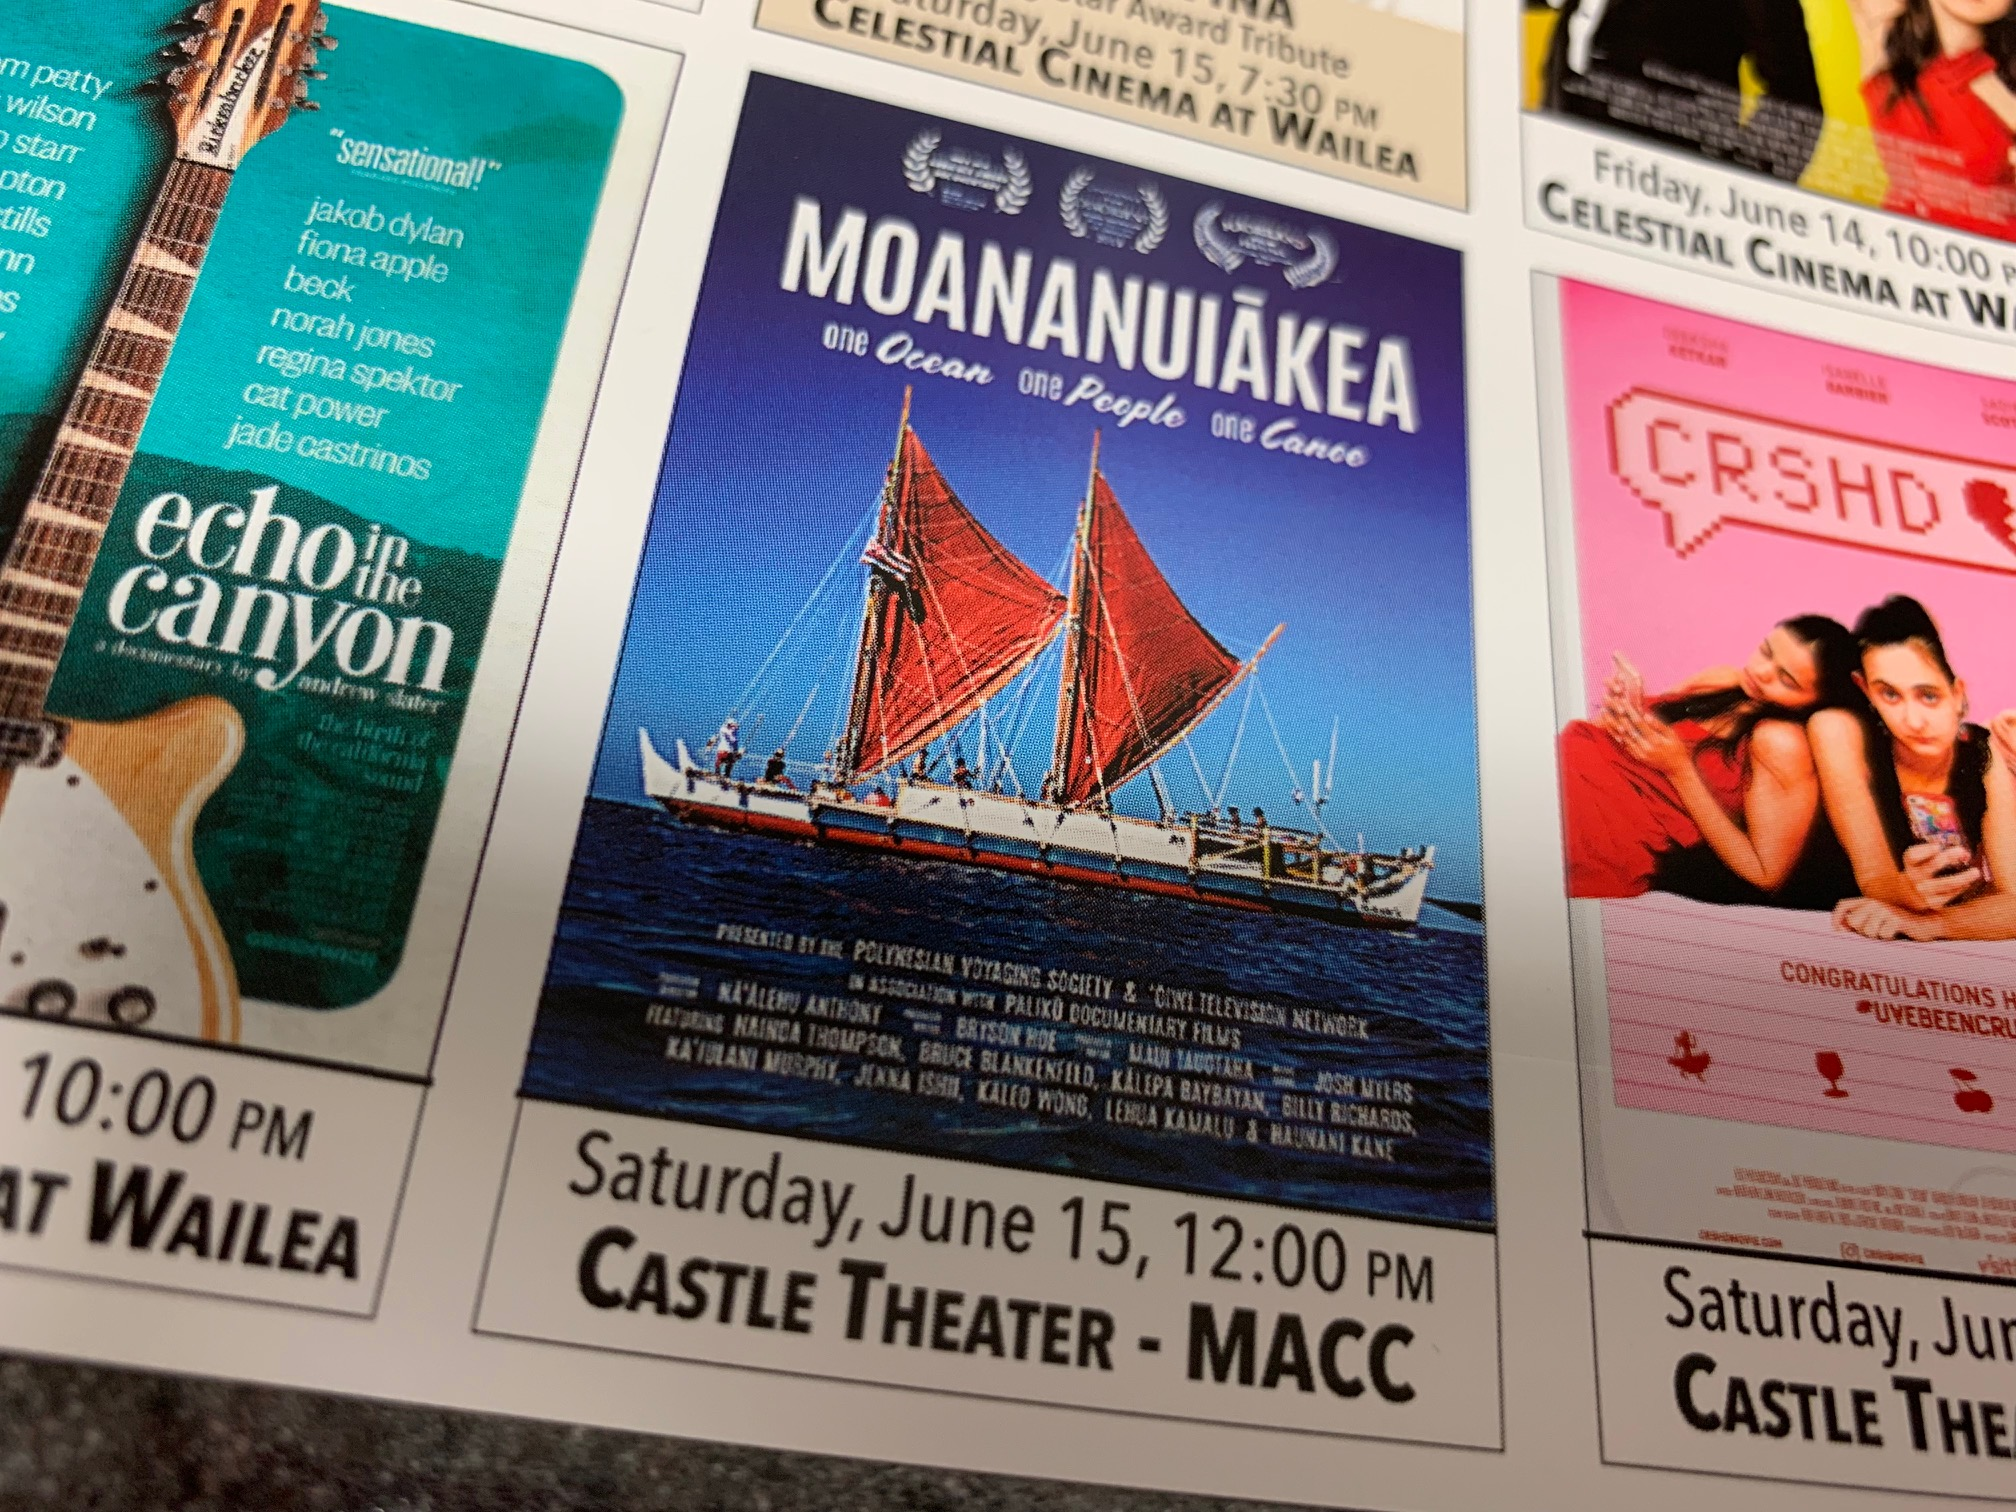 Maui Film Festival Screenings in Castle Theater